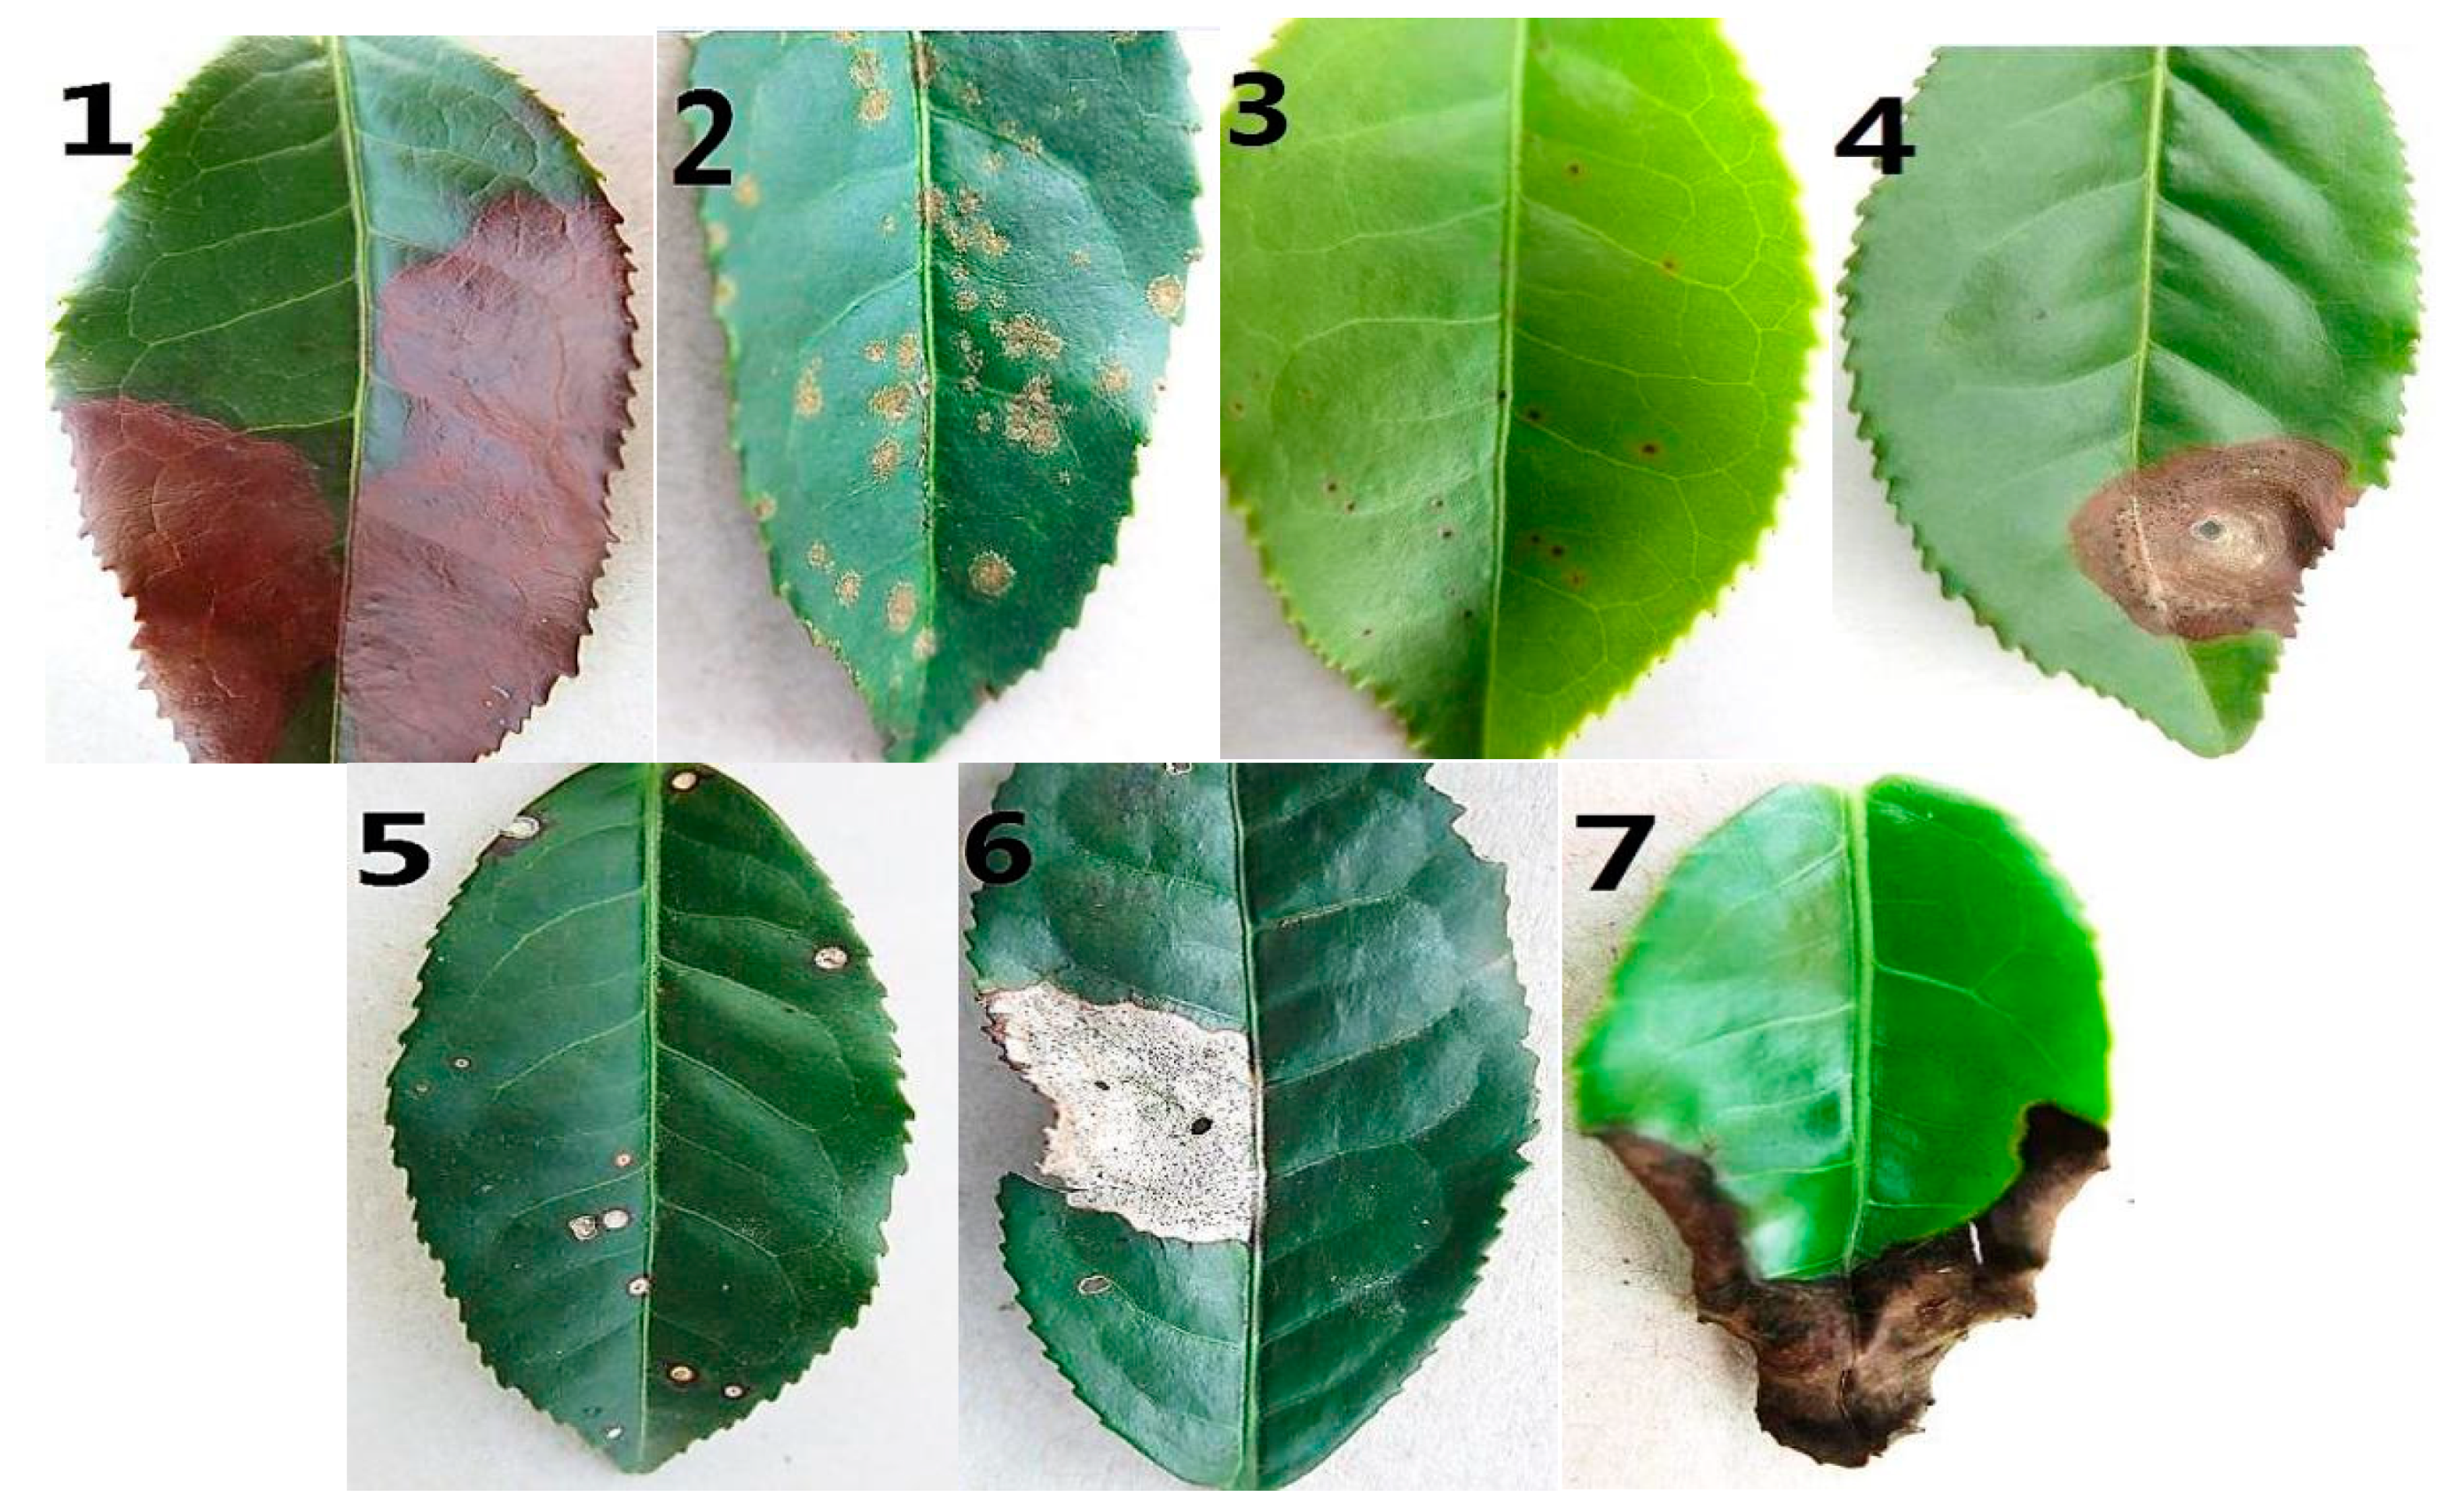 Symmetry | Free Full-Text | Visual Tea Leaf Disease Recognition